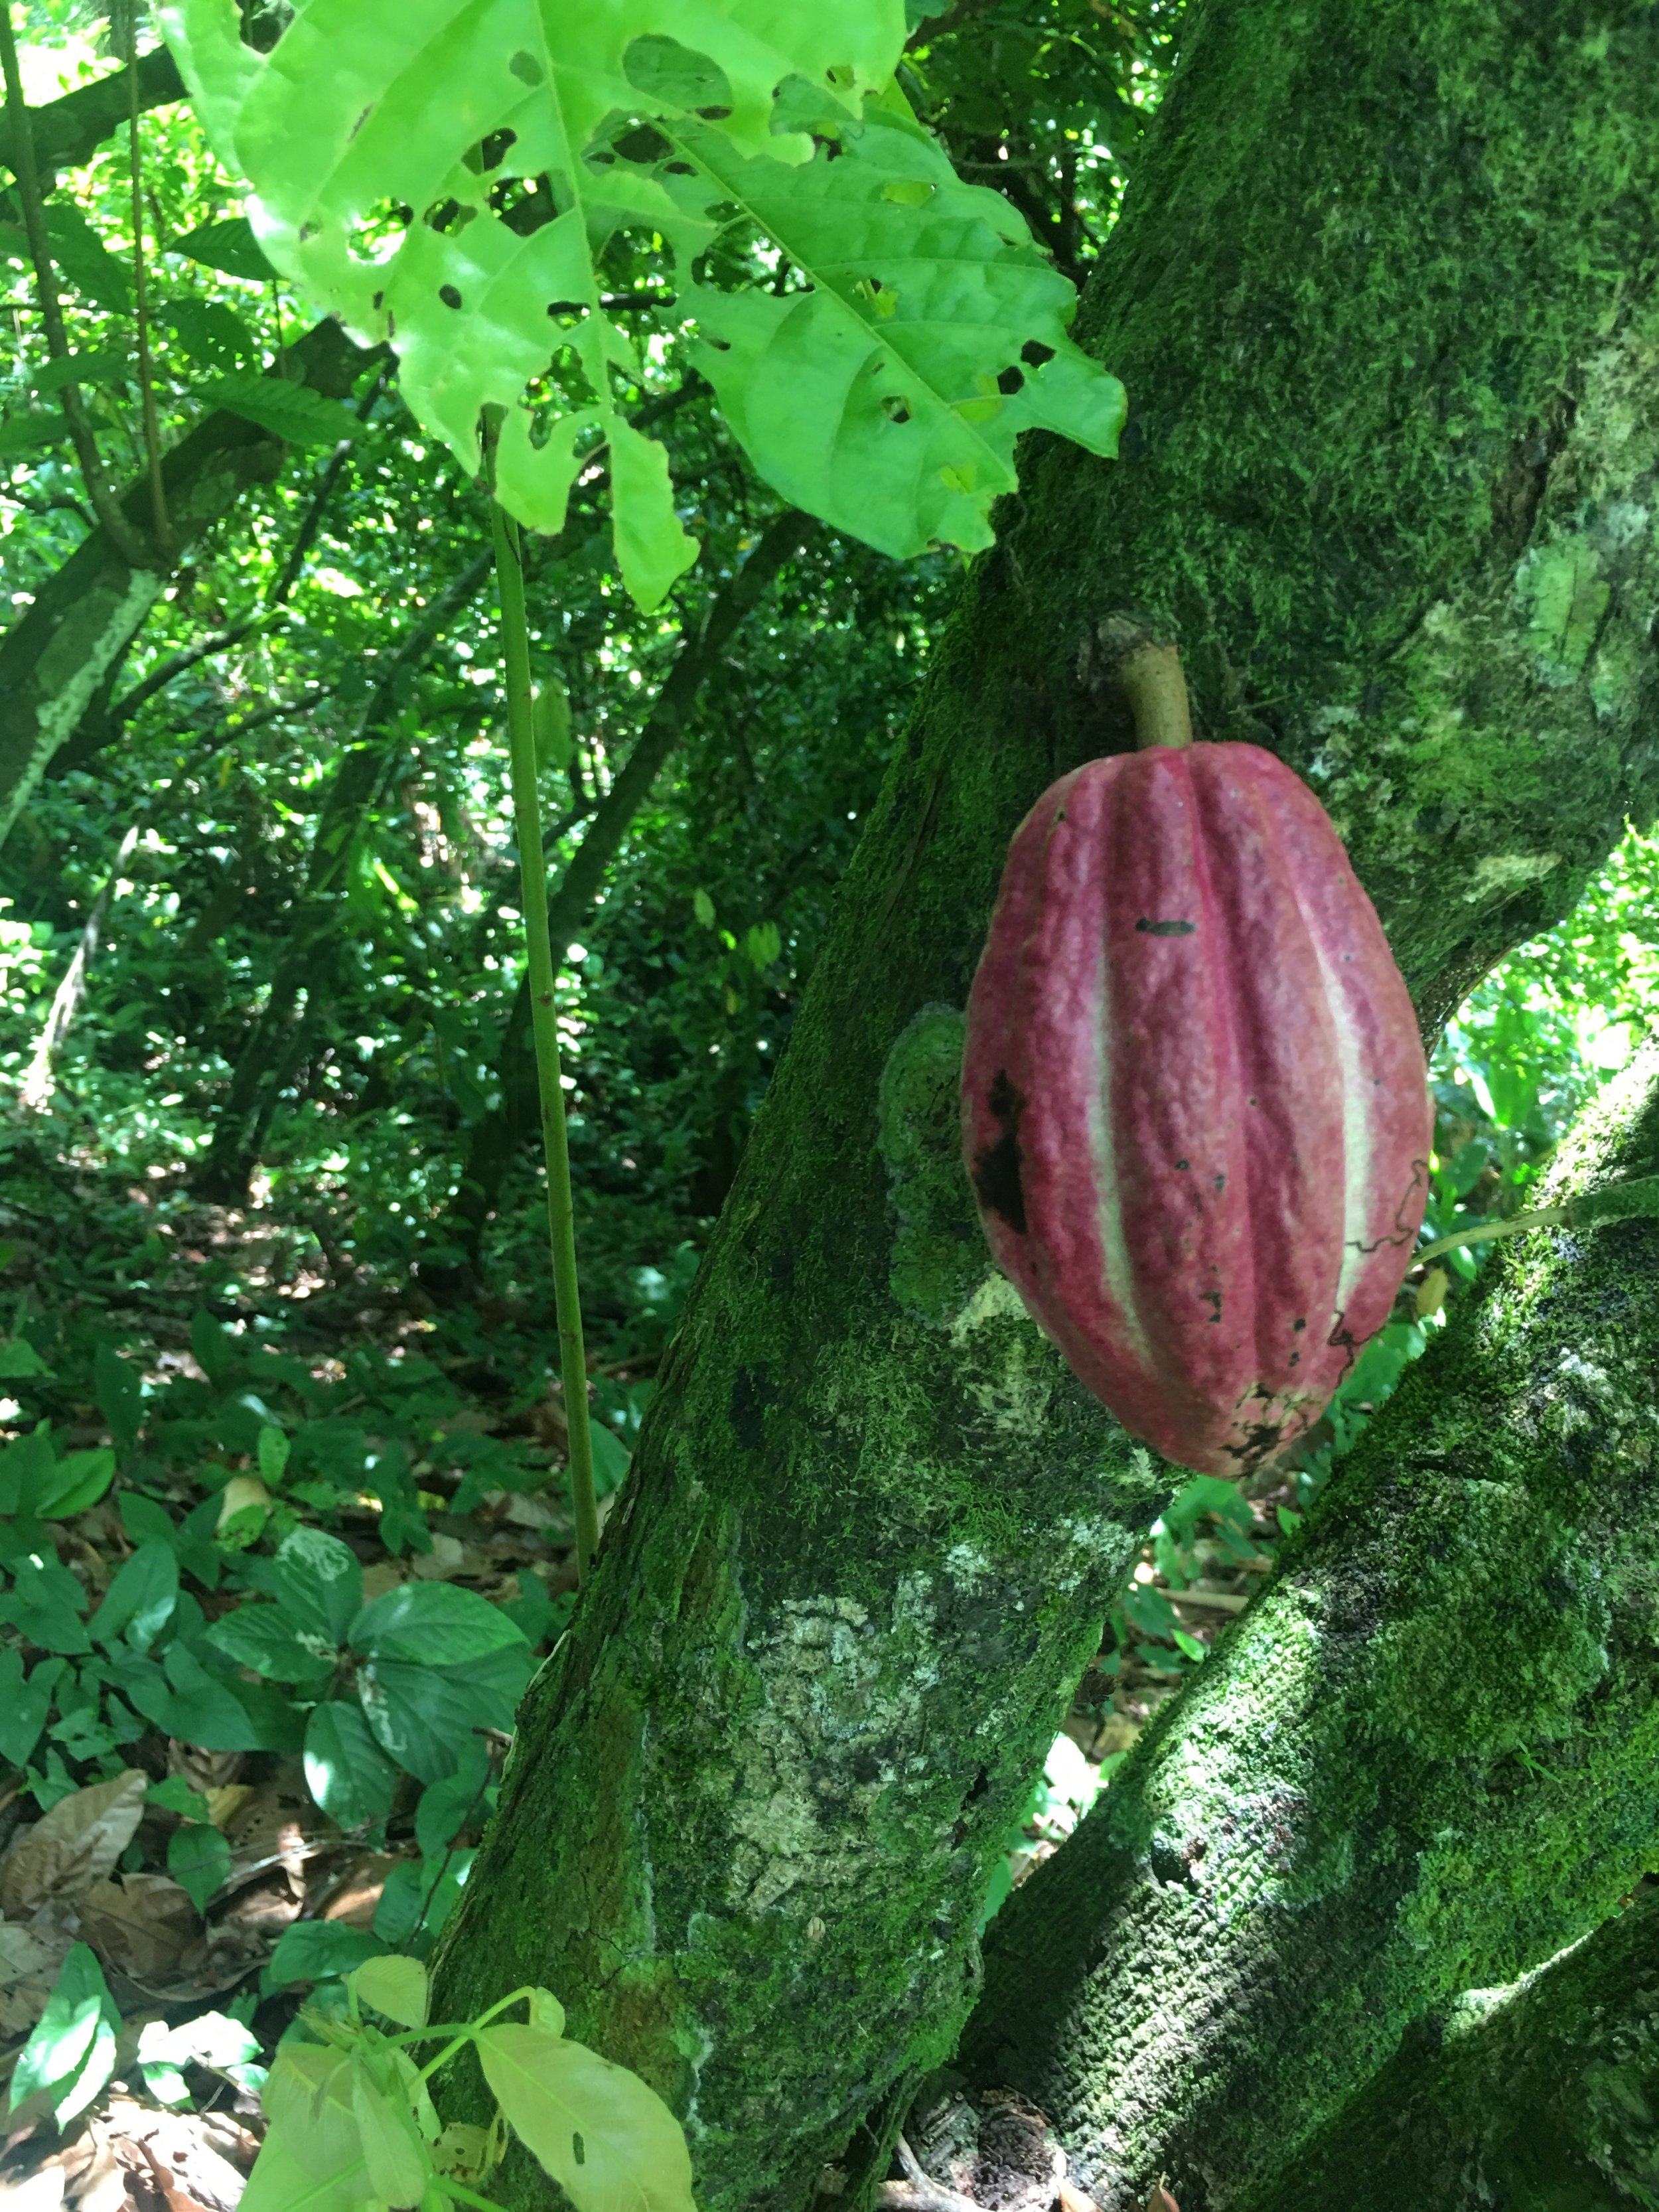 Cacao pod on tree in Isla Bastimentos, Bocos del Toro, Panama at Up in the Hill organic farm